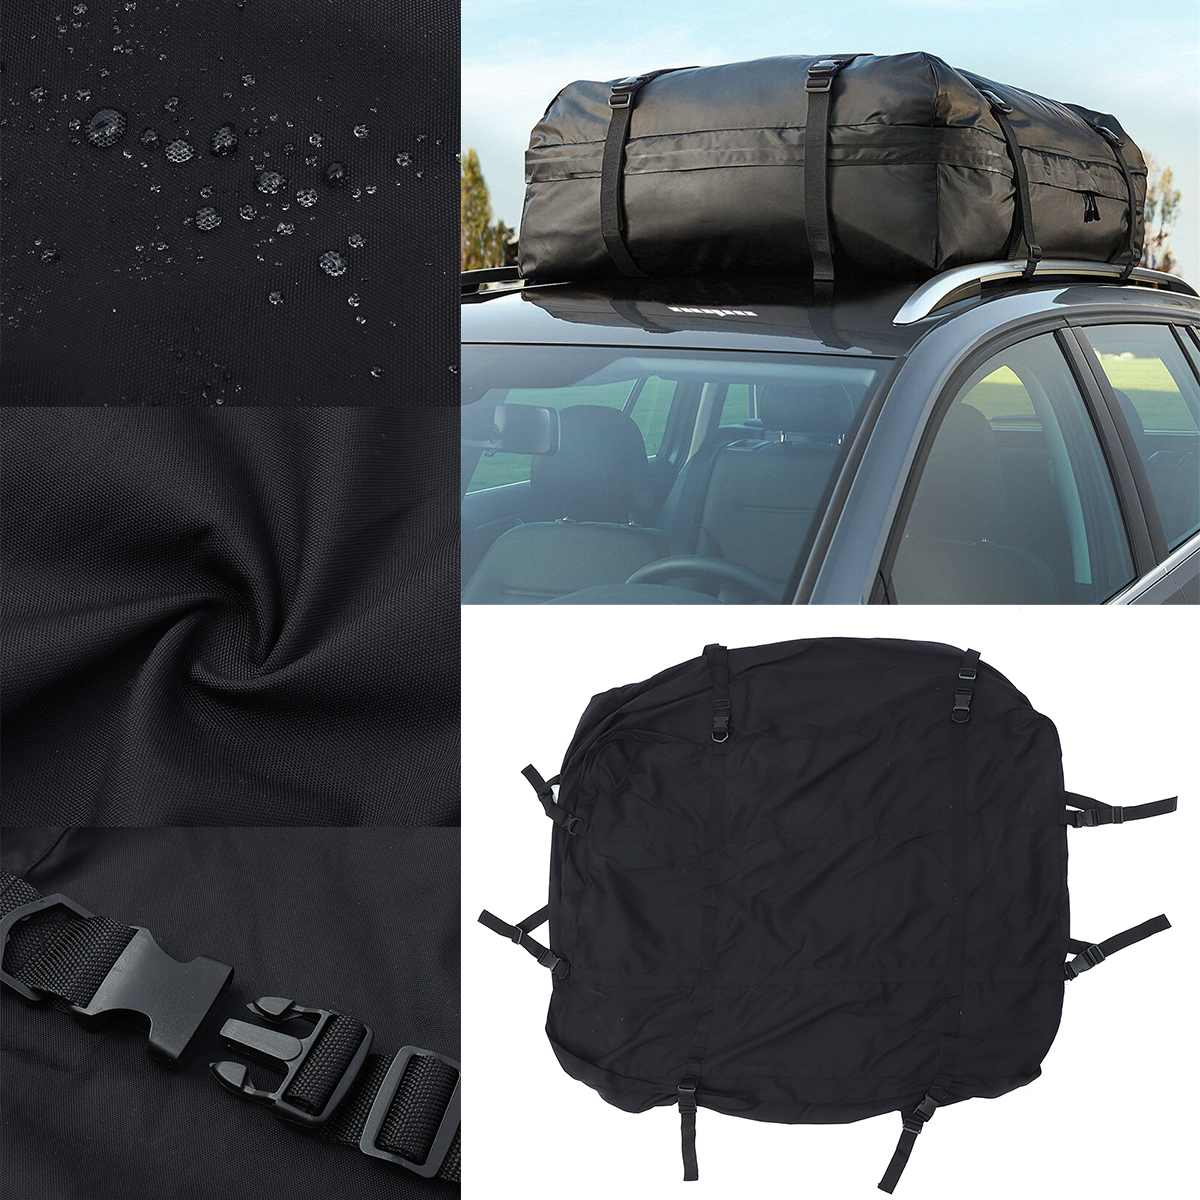 112x86x43 Cm Waterproof Cargo Luggage Travel Bag Car Roof